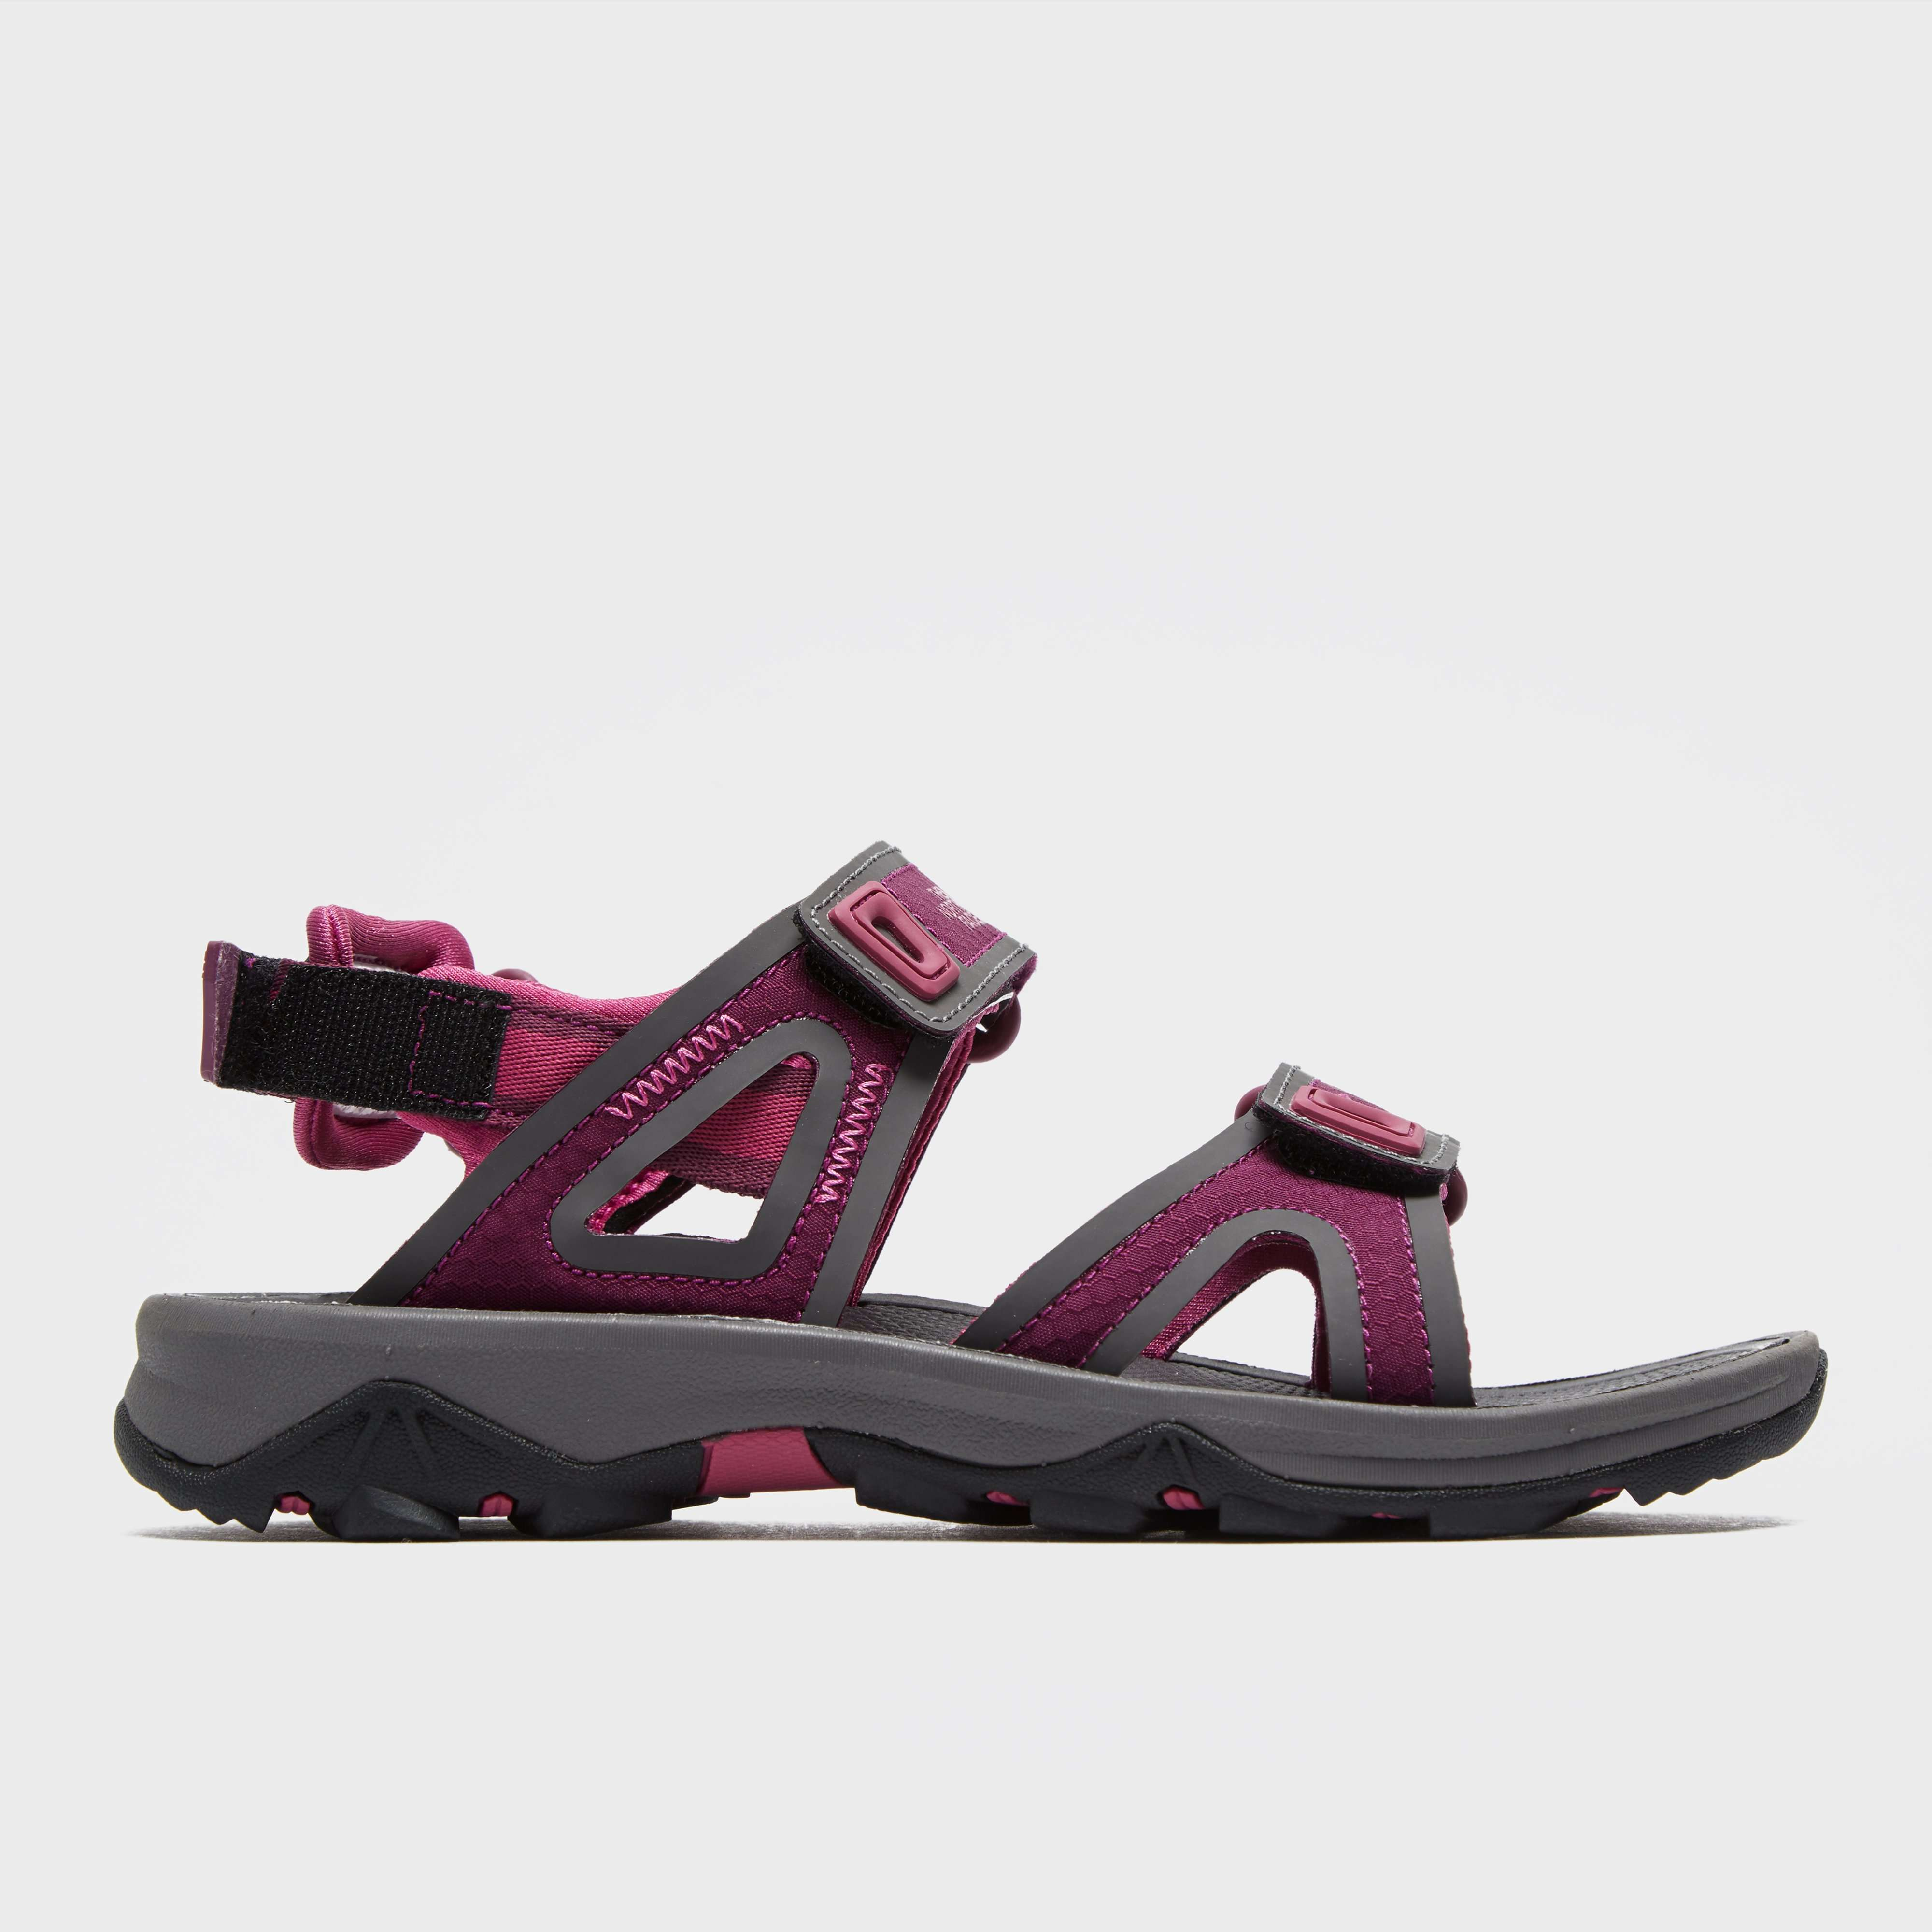 THE NORTH FACE Women's Hedgehog Sandal